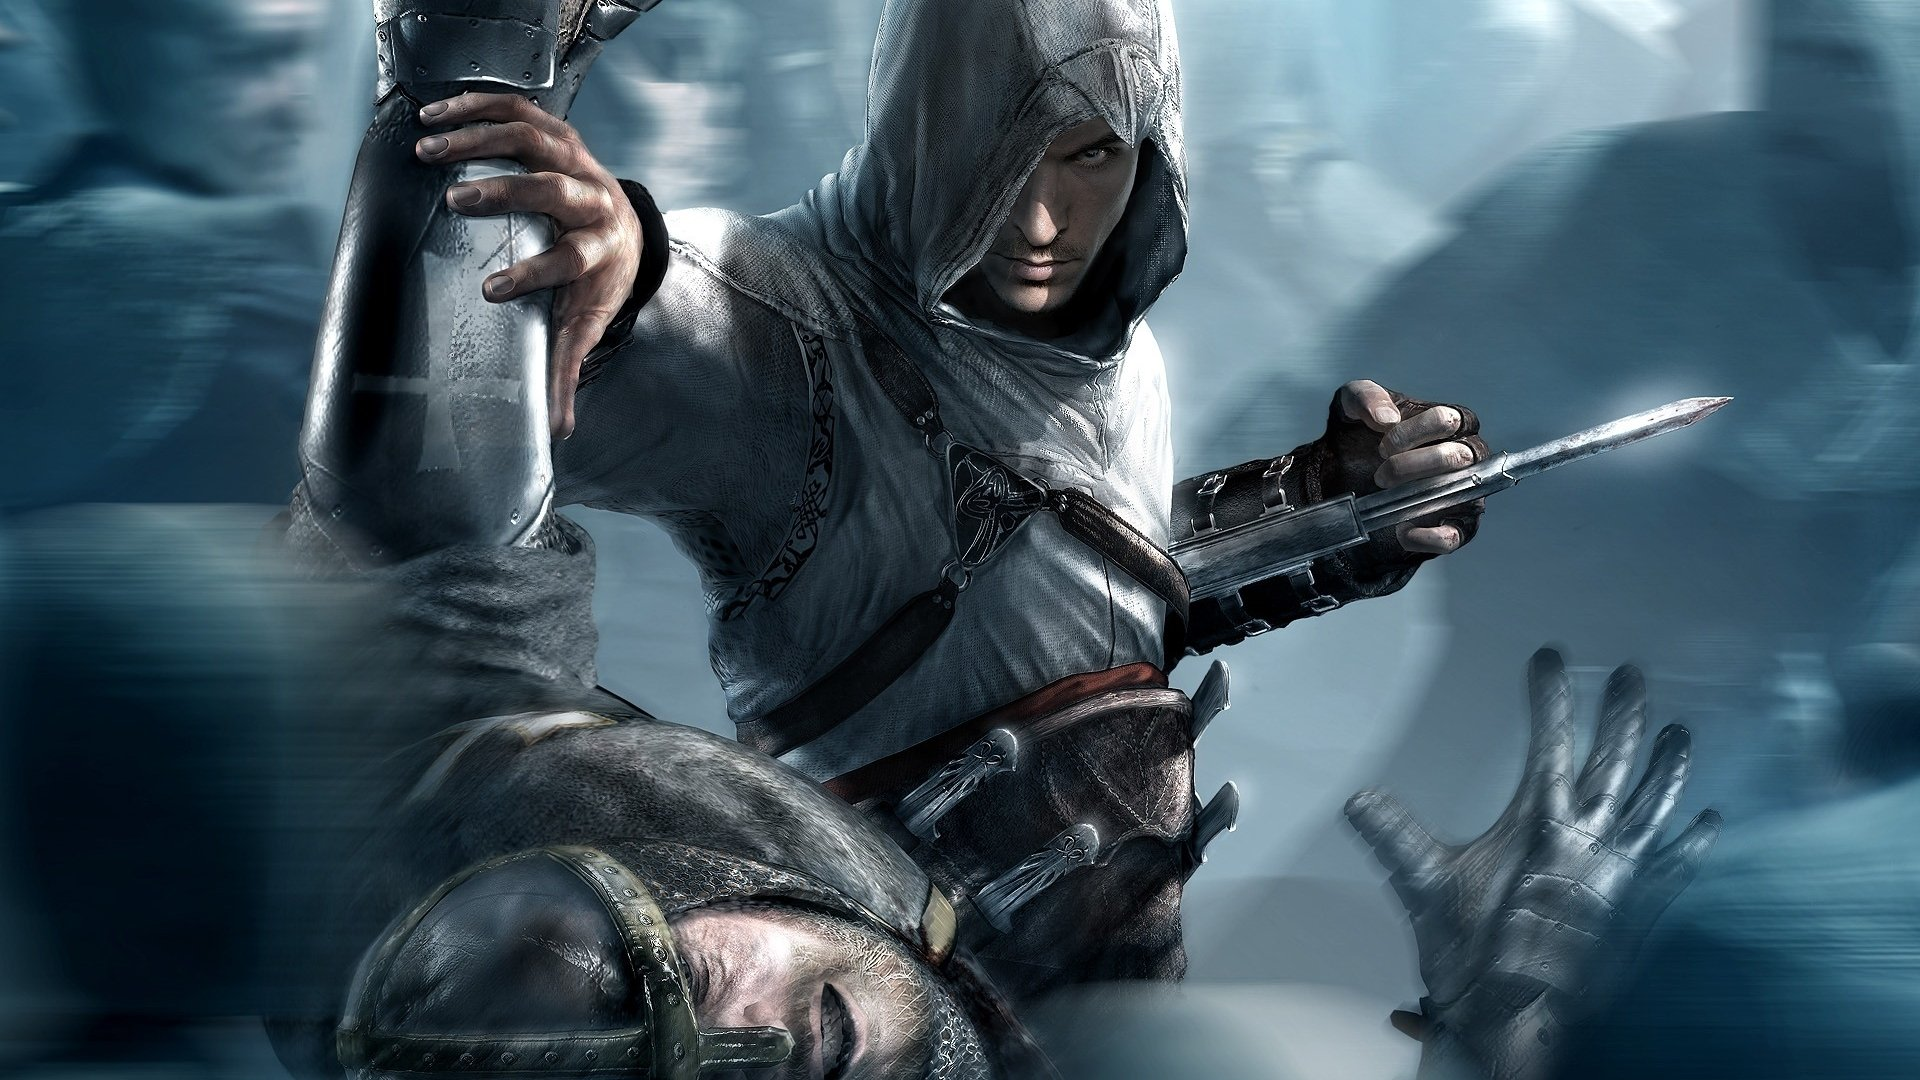 Video Game - Assassin's Creed  Altair (Assassin's Creed) Wallpaper